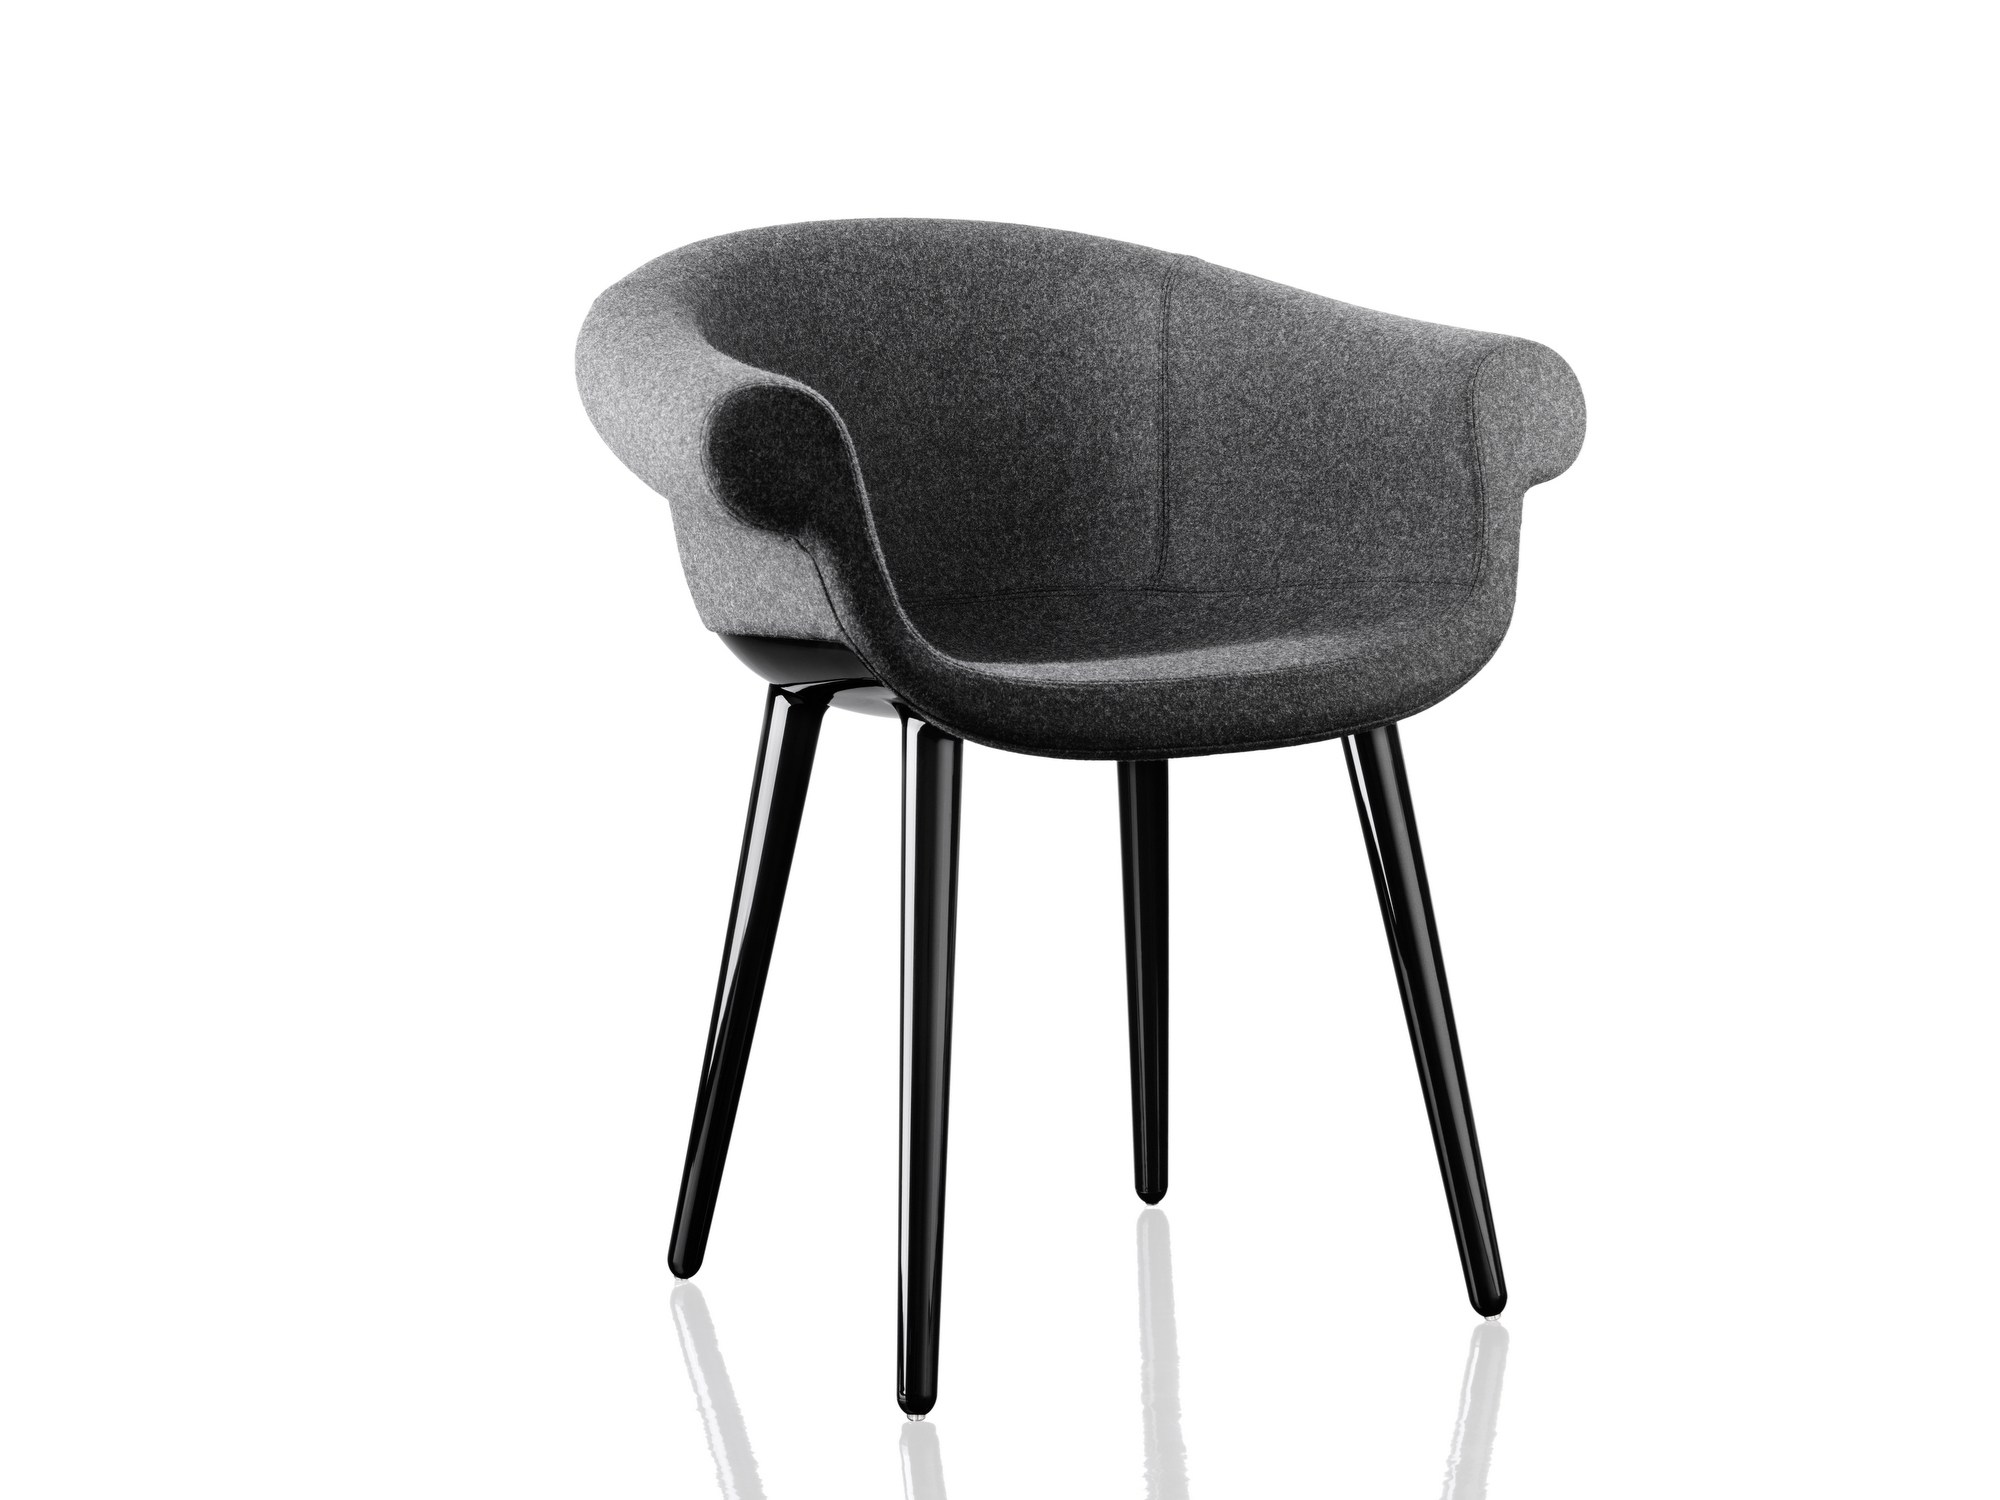 Upholstered Leather Easy Chair CYBORG LORD | Leather Easy Chair Cyborg  Collection By Magis Design Marcel Wanders